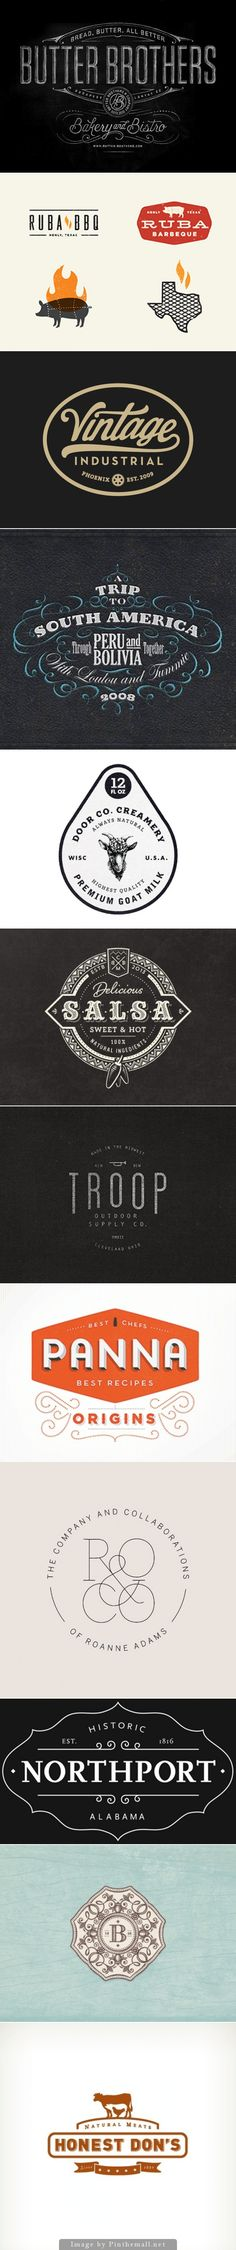 Vintage & Retro Logo Designs